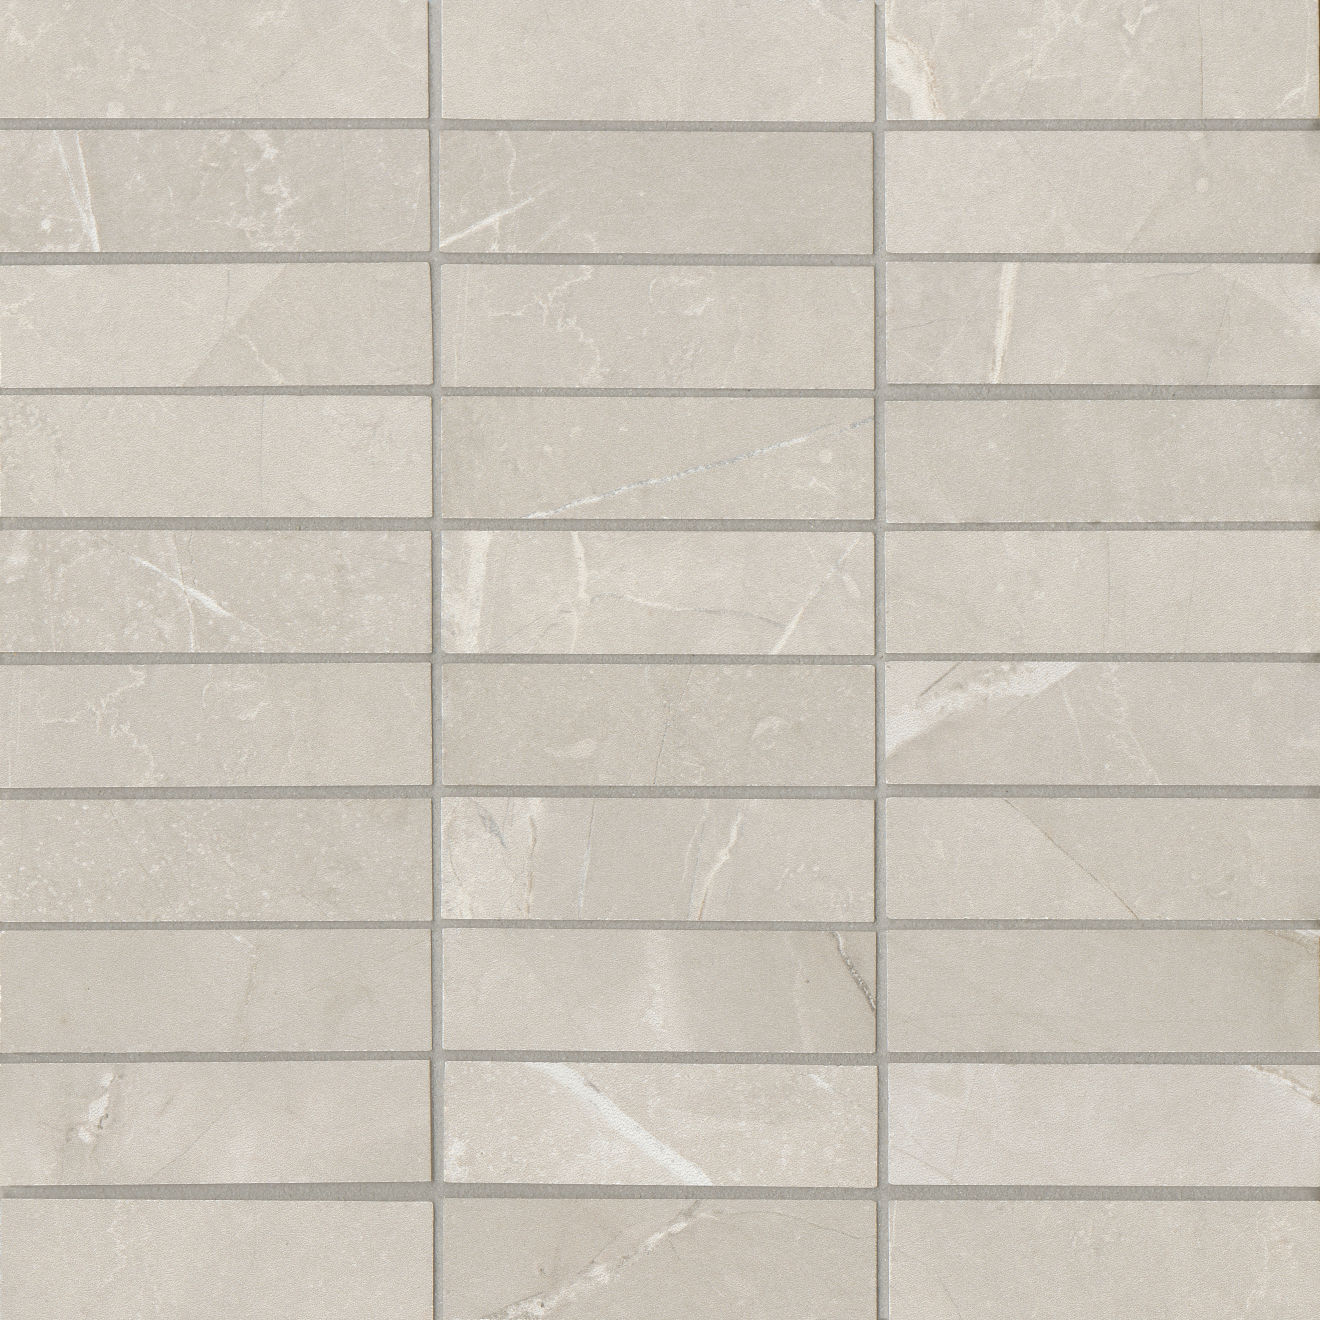 "Pulpis 1""x4"" Honed Porcelain Mosaic in Grigio"